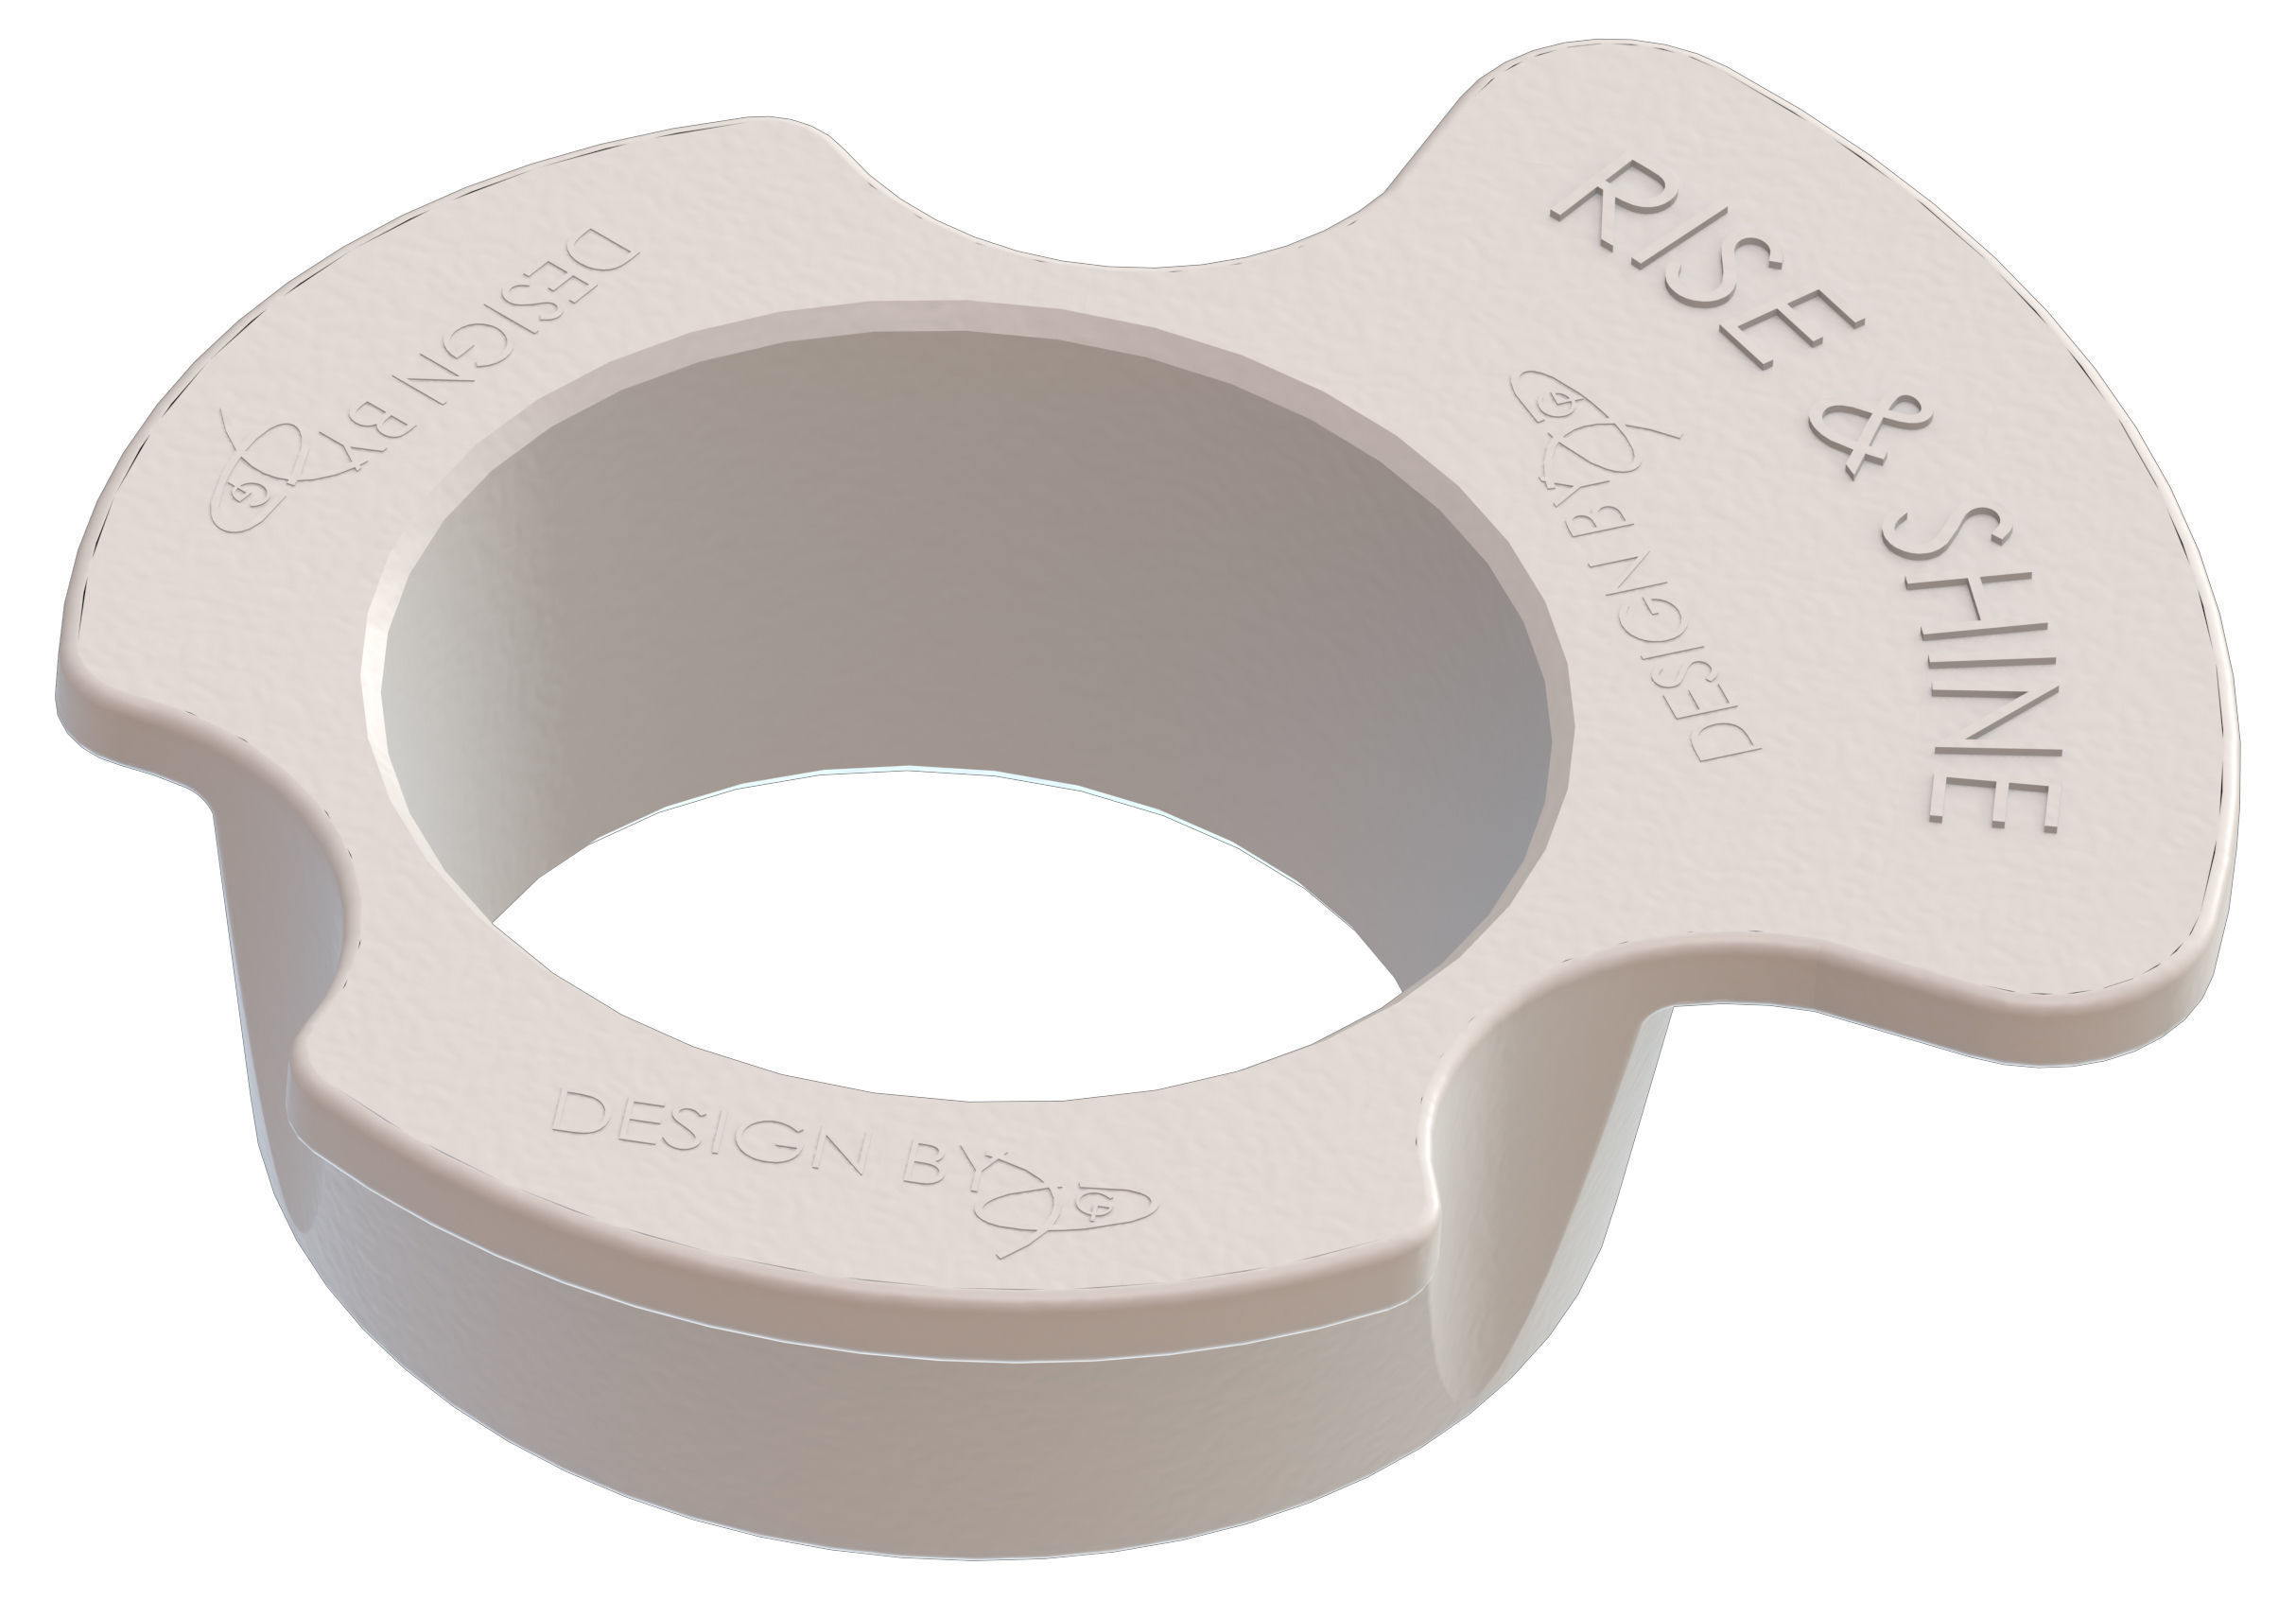 Cup Holder with Note RISE AND SHINE